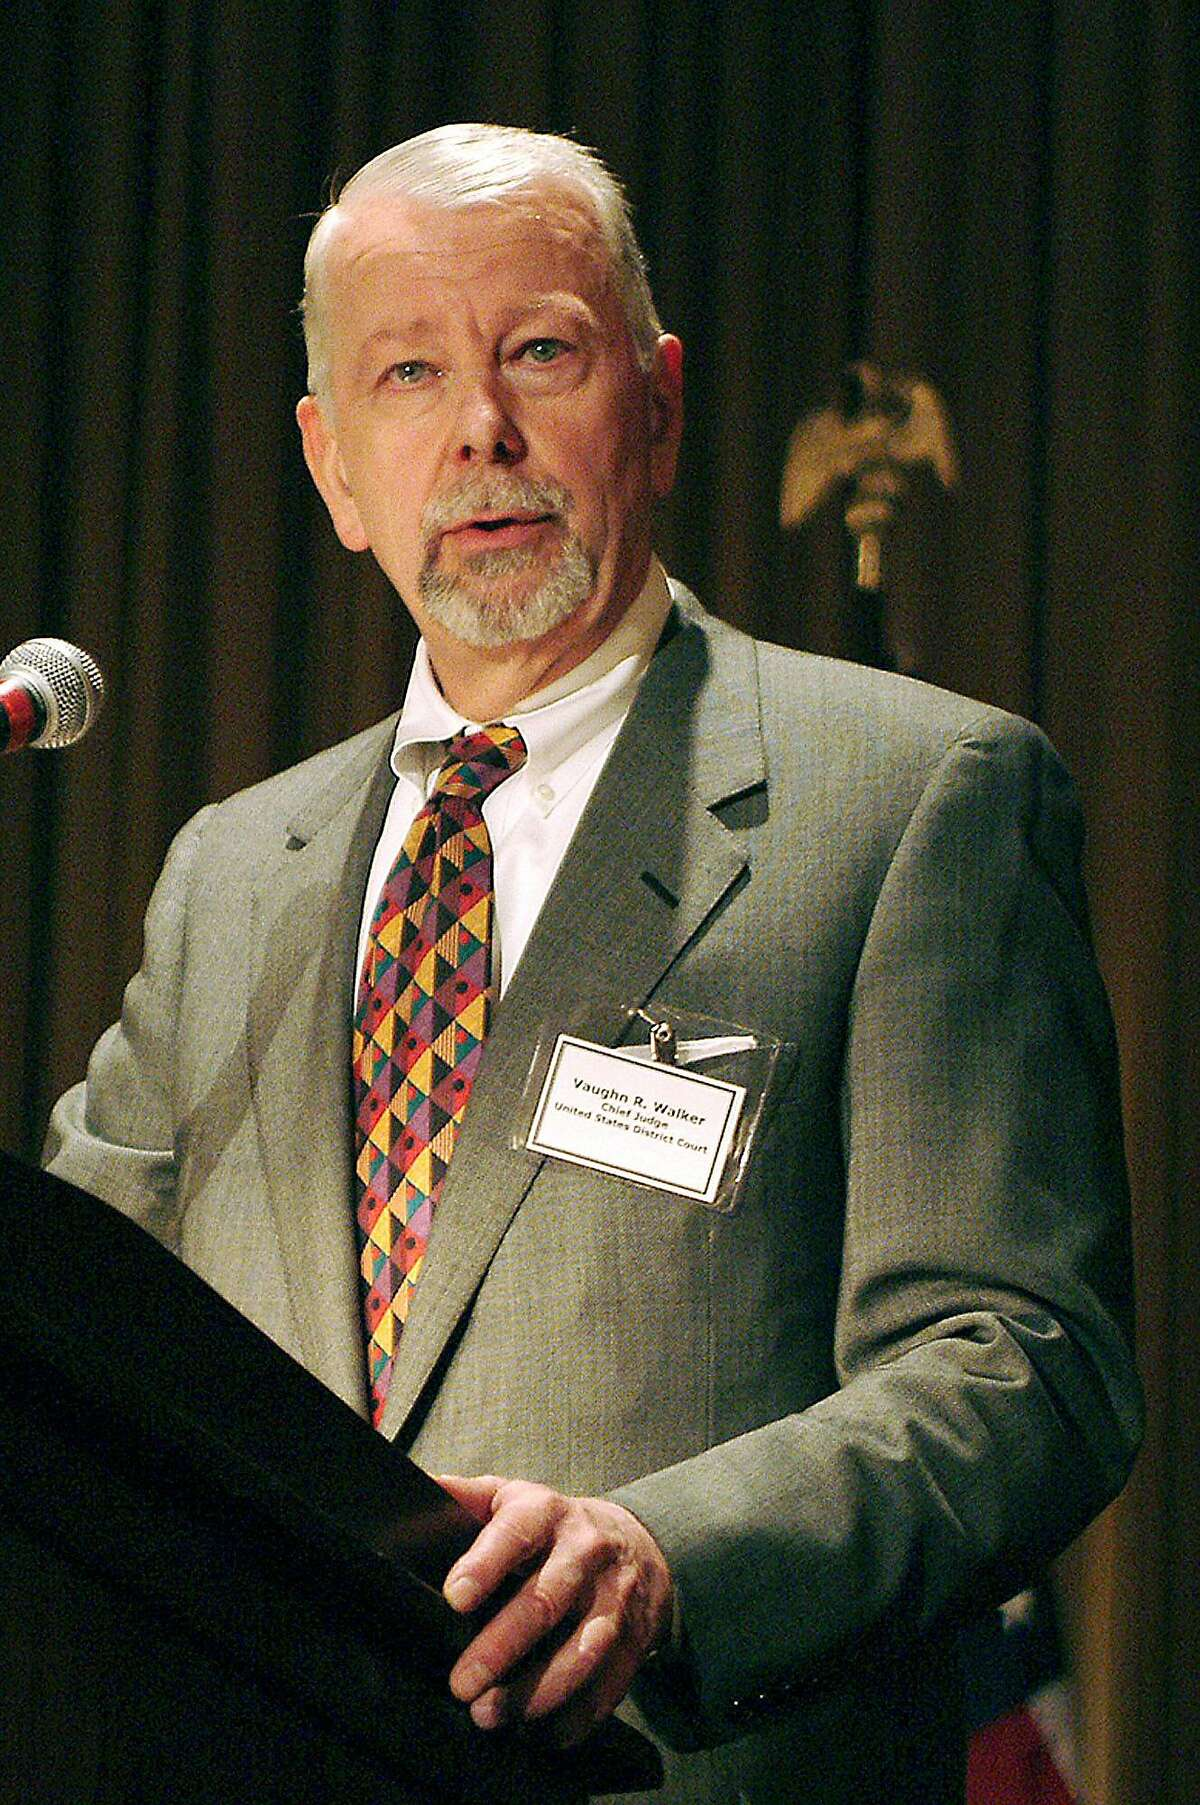 In this July 20 2006 file photo, U.S. District Judge Vaughn Walker speaks at the St. Francis Hotel in San Francisco. Walker is a profile in fragments, a figure sketched from the rare interview, his work product and colleagues' carefully chosen anecdotes. (AP Photo/San Francisco Daily Journal, S. Todd Rogers, file) ** NO SALES MAGS OUT MANDATORY CREDIT **